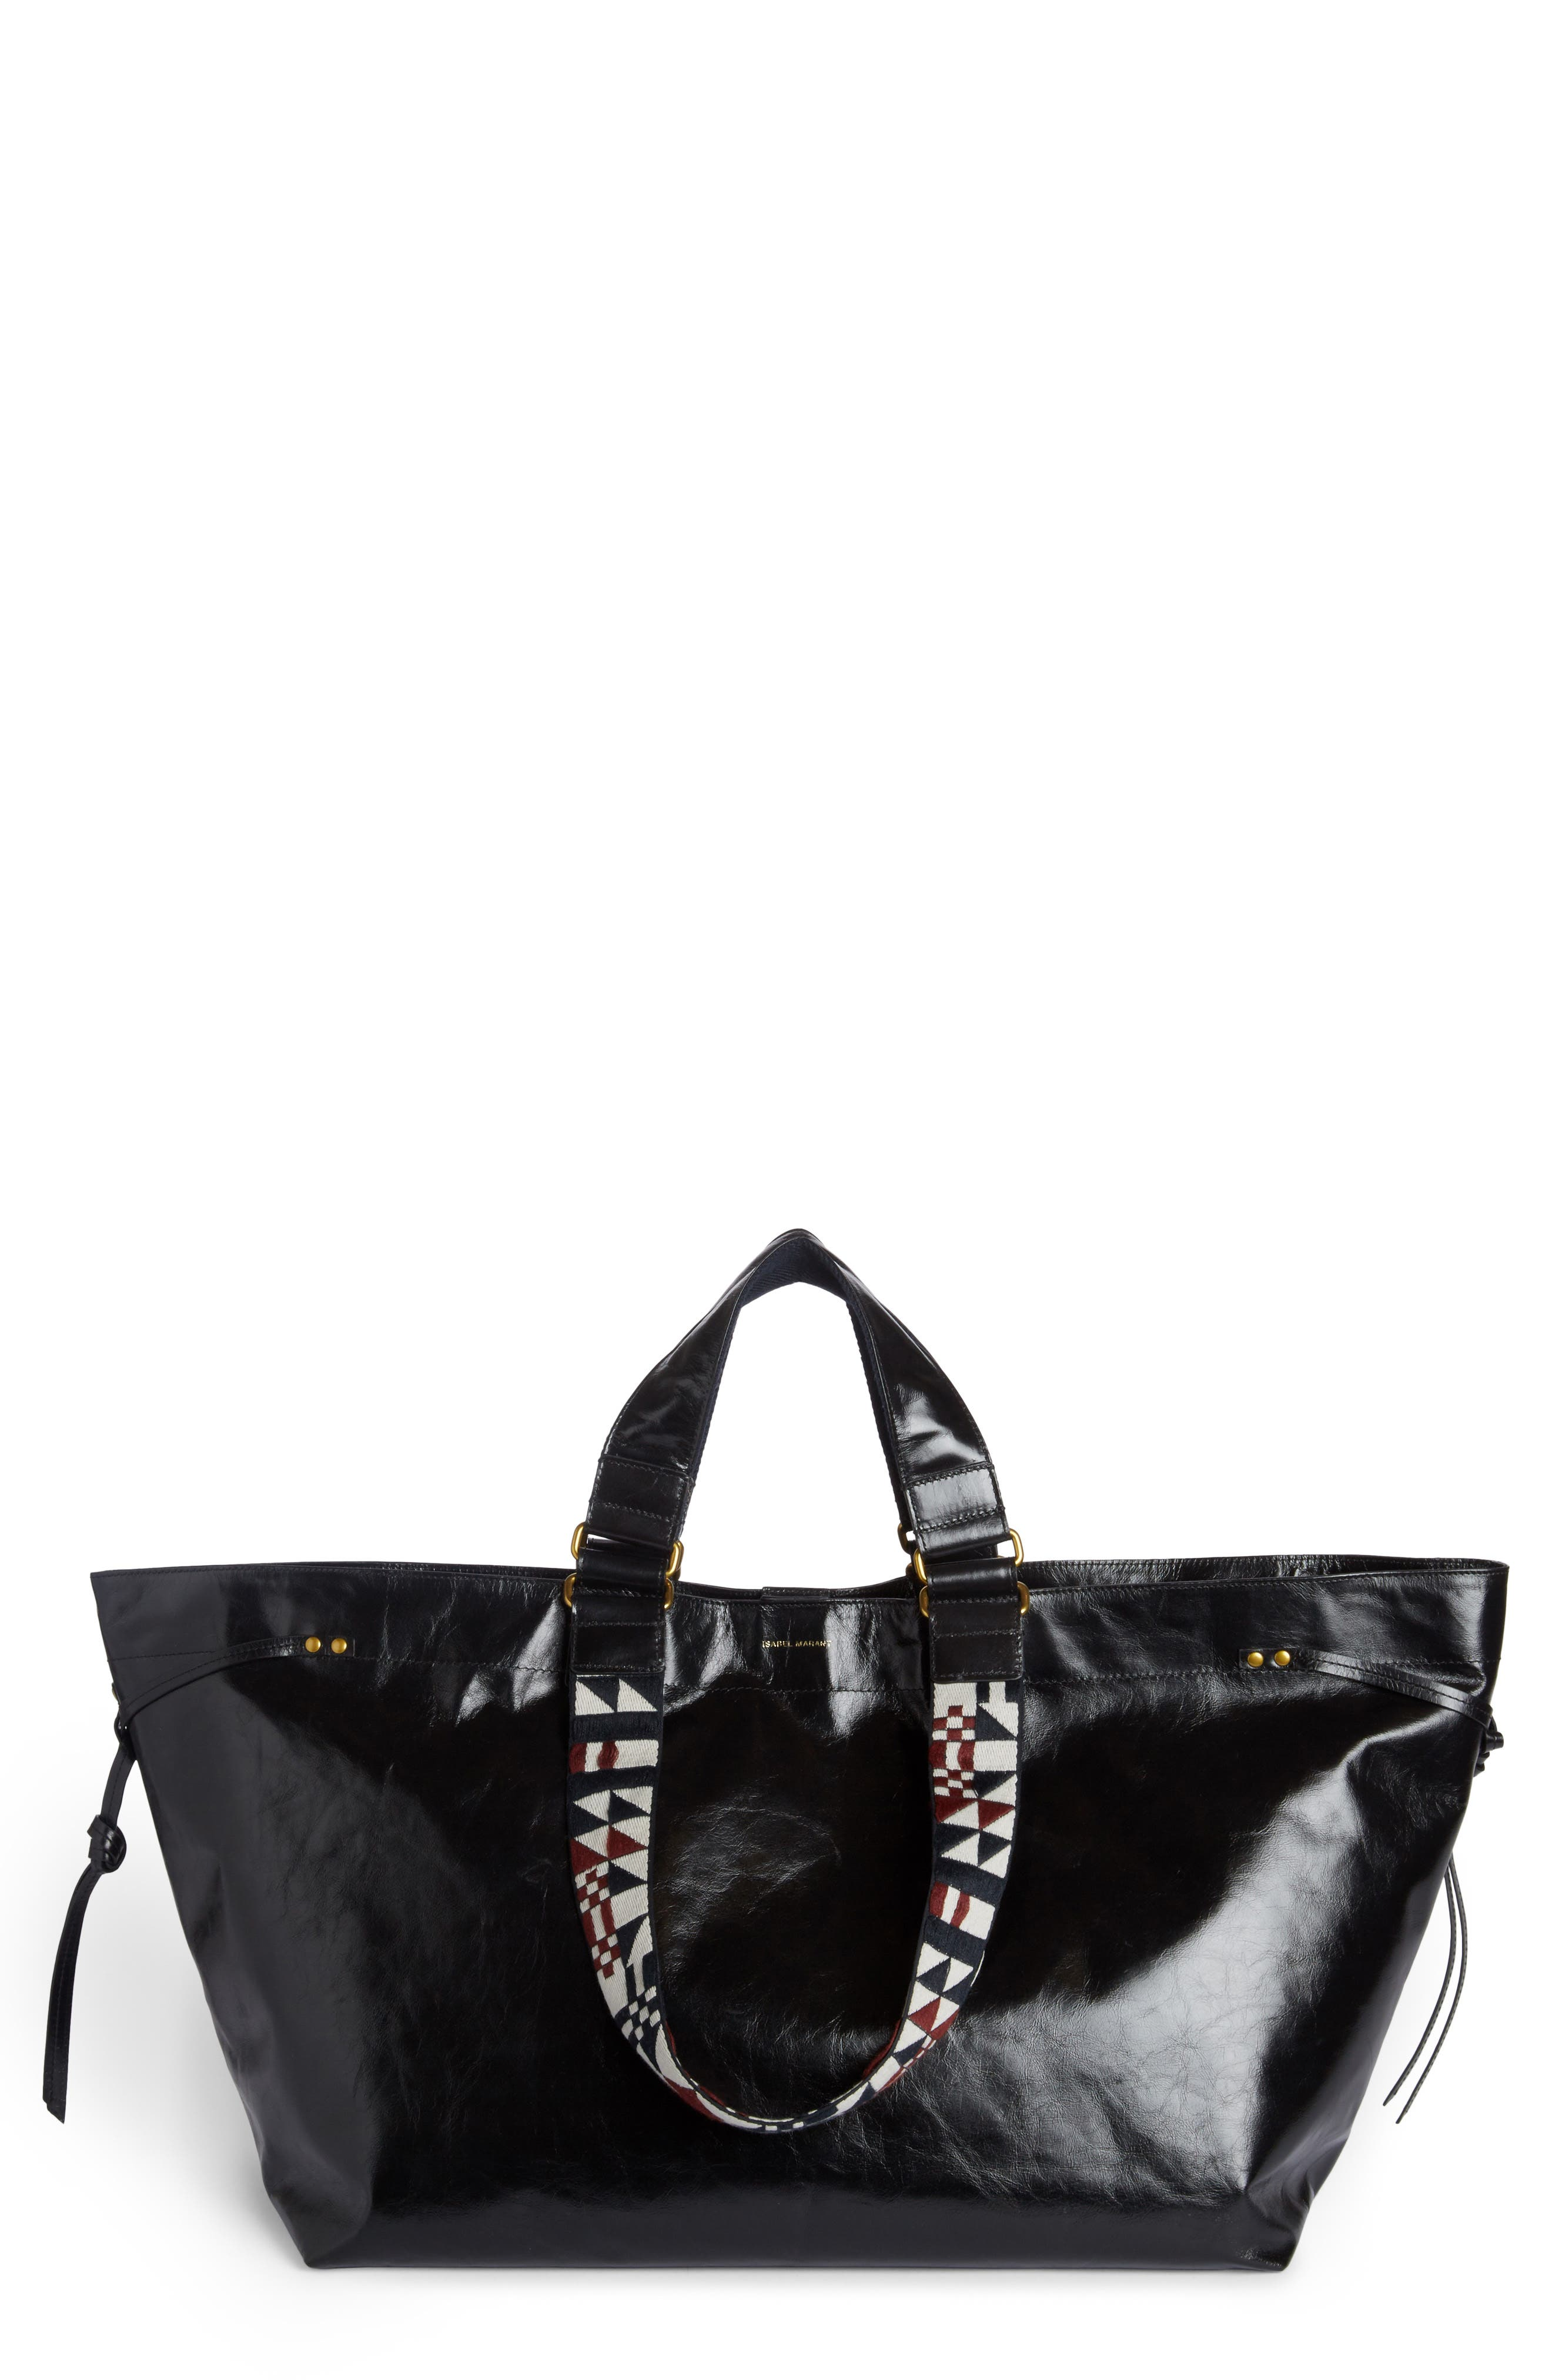 Alternate Image 1 Selected - Isabel Marant Small Bagya Leather Tote